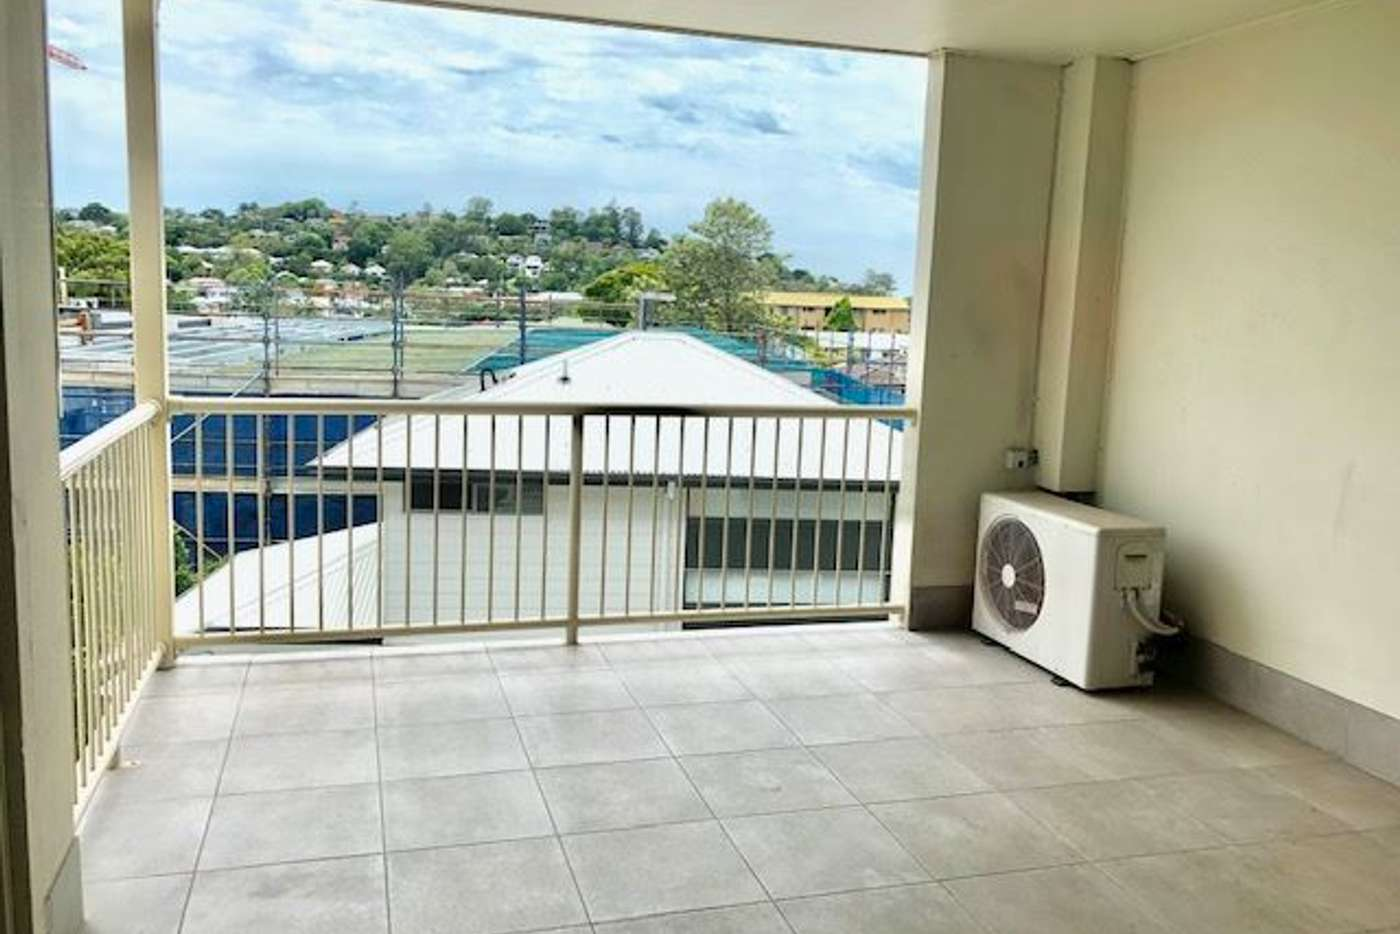 Sixth view of Homely apartment listing, 7/309 Enoggera Rd, Newmarket QLD 4051